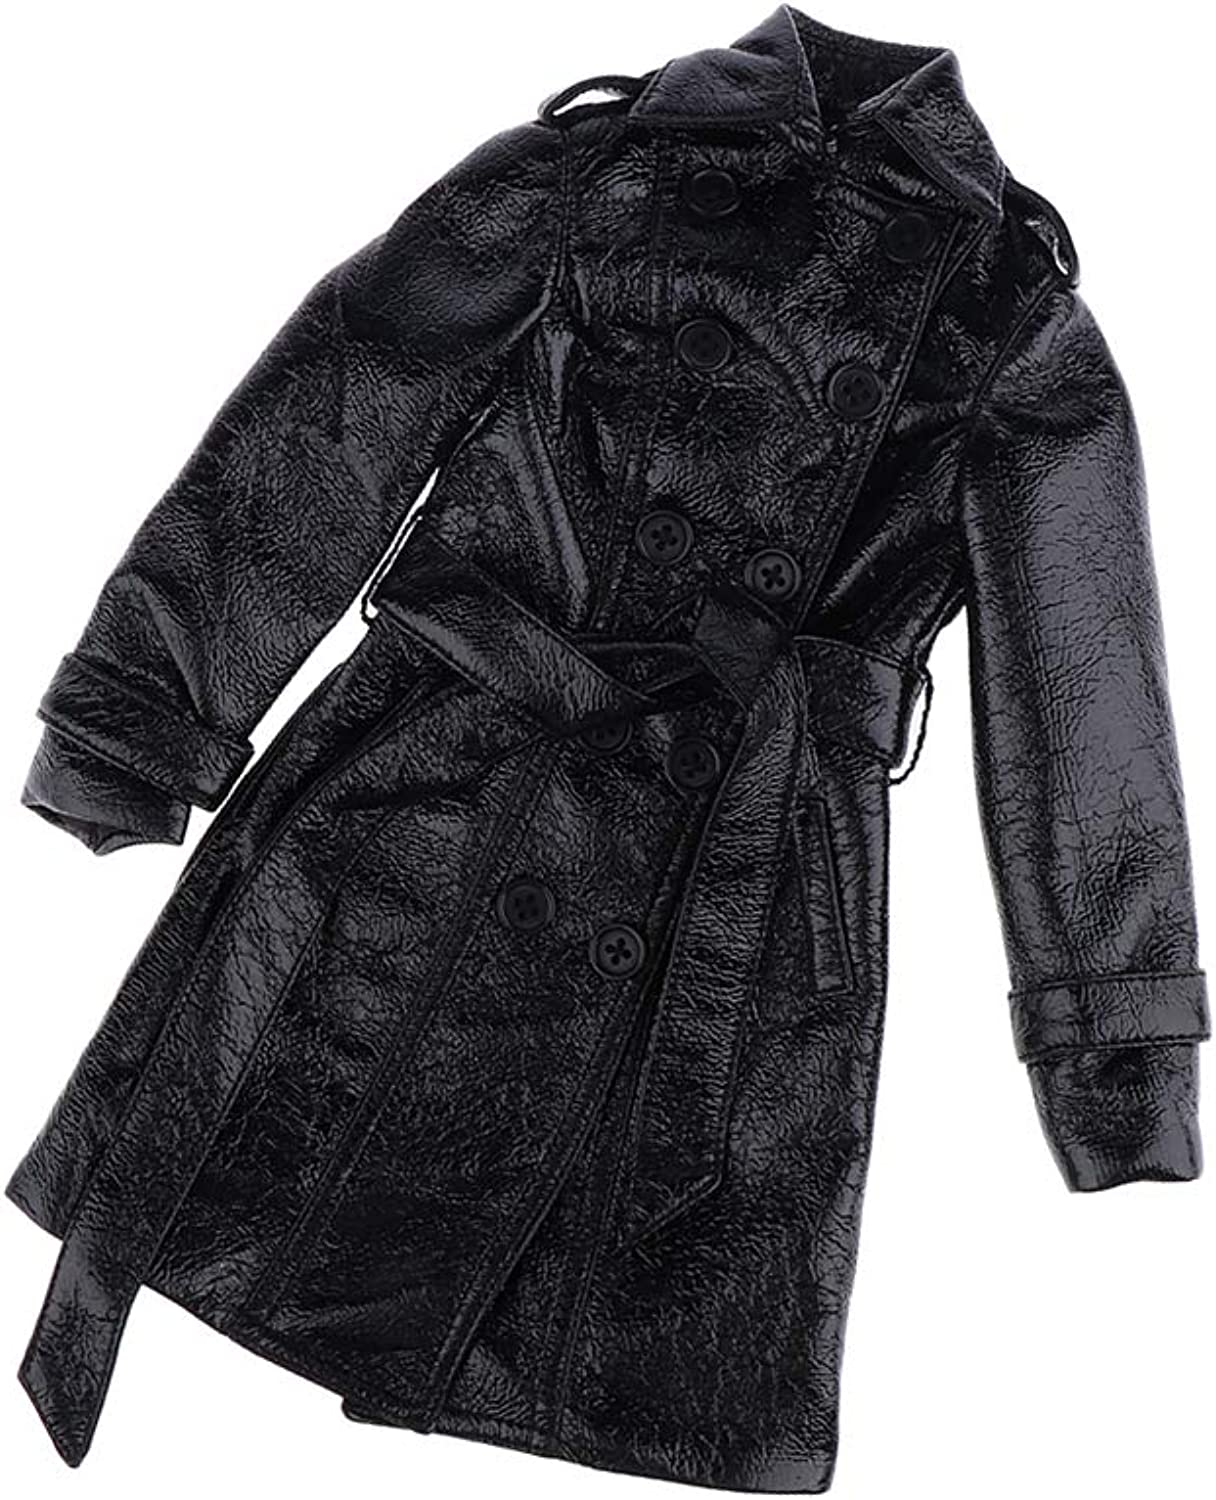 Fityle Handmade Black Trench Coat Winter Clothes Accessory for 1 3 BJD Doll Casual Outfit